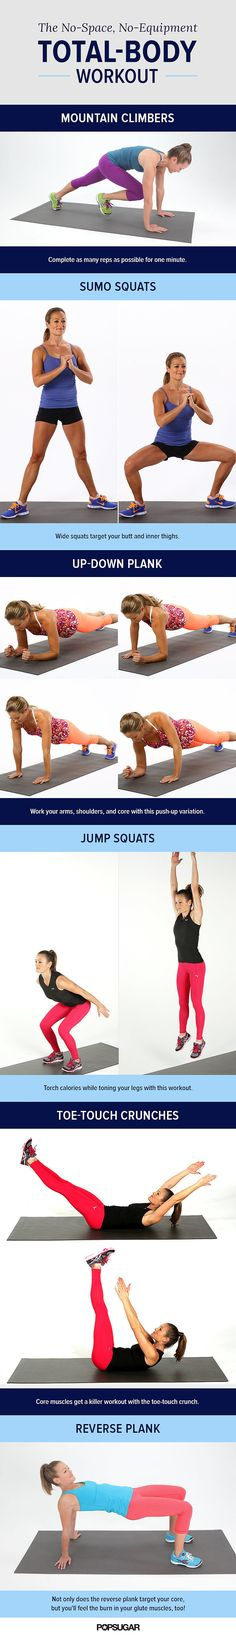 mtn climber- 1 min Other exercises: 2 sets of 10 (up down plank one arm first for 10 then switch arms) Reverse Plank: hold for minute or 30 secs at a time